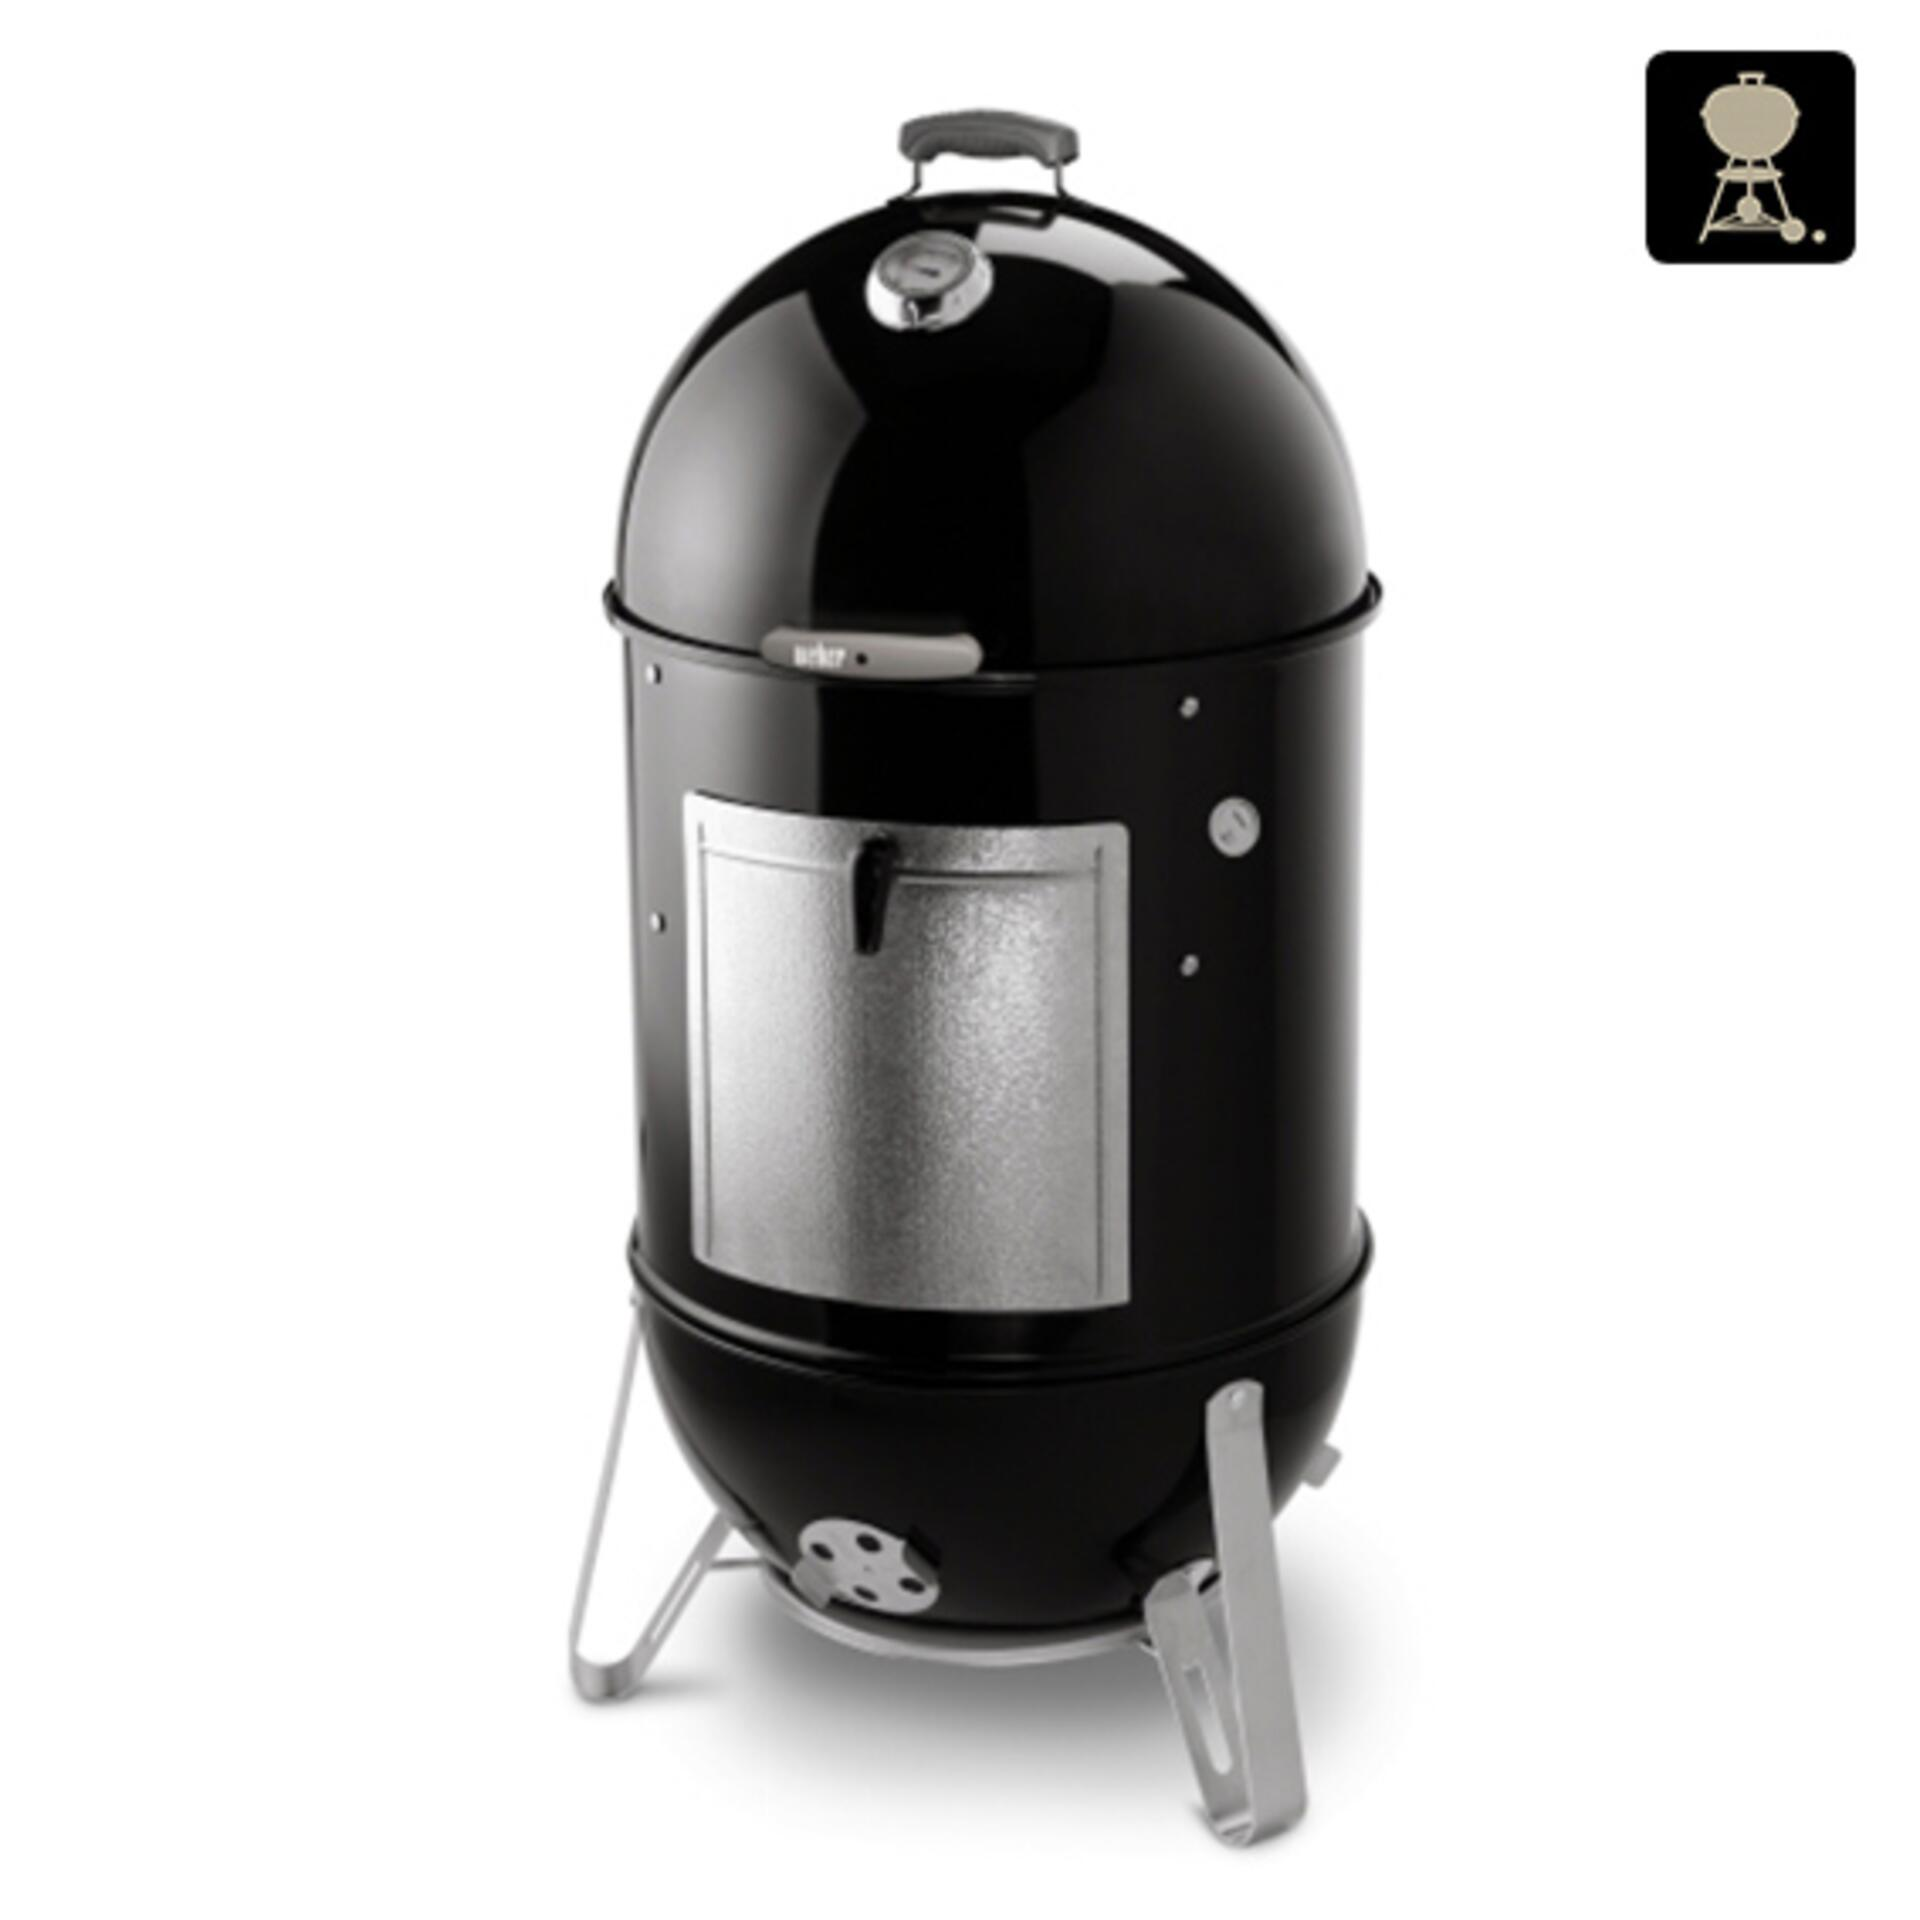 Weber Smokey Mountain Cooker 57 cm Black